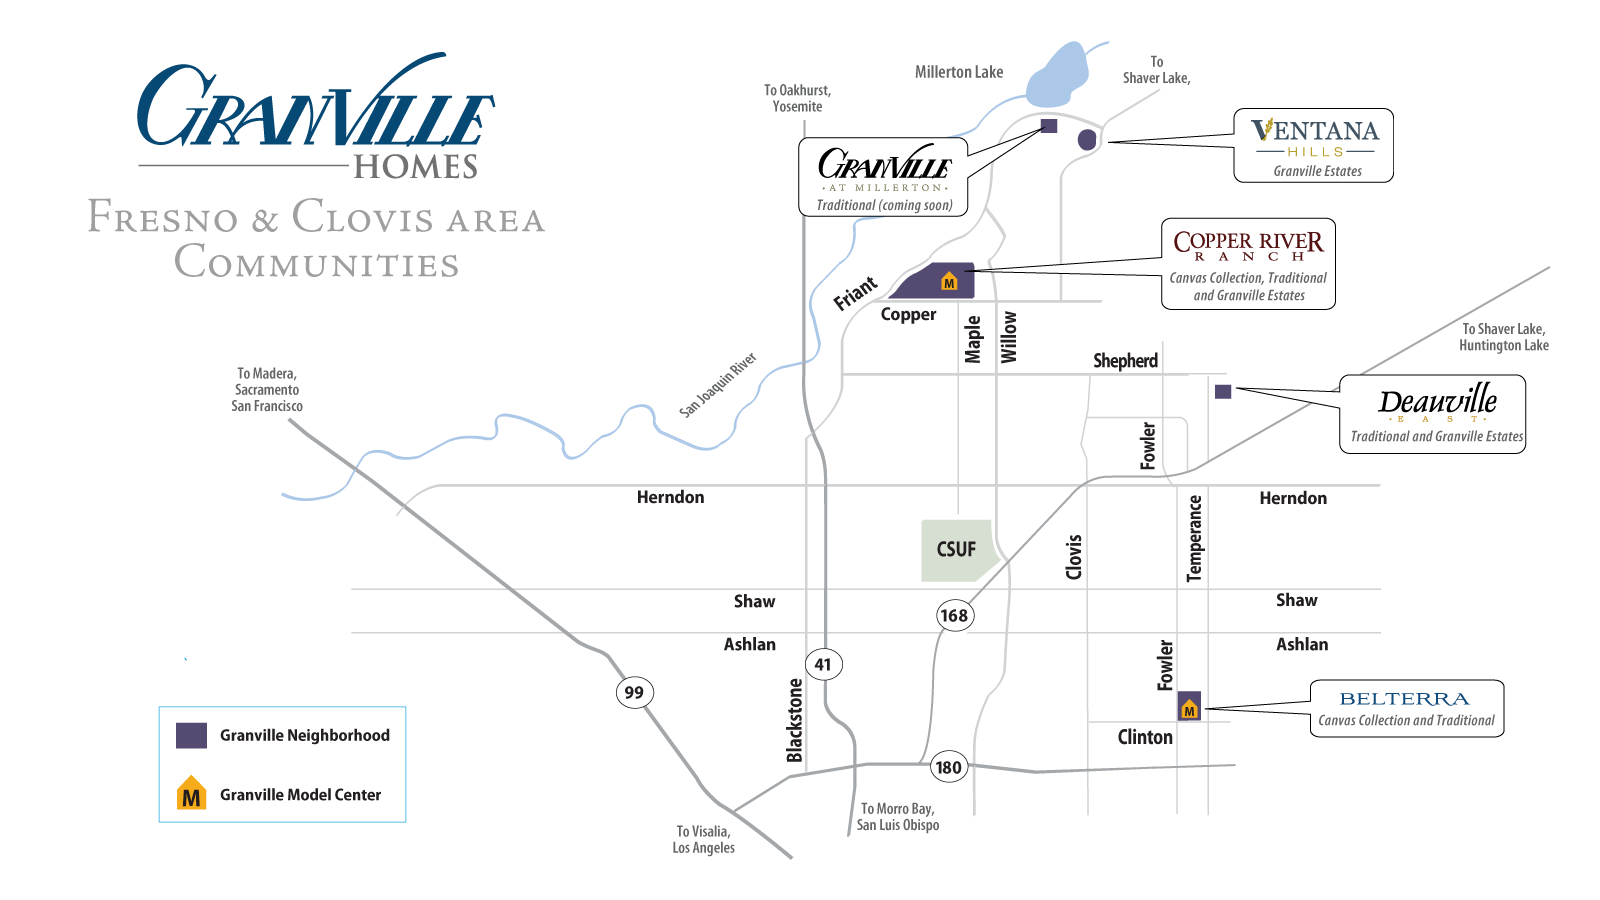 Illustrated Map of Granville Home's Communities Across Fresno and the Surrounding Area